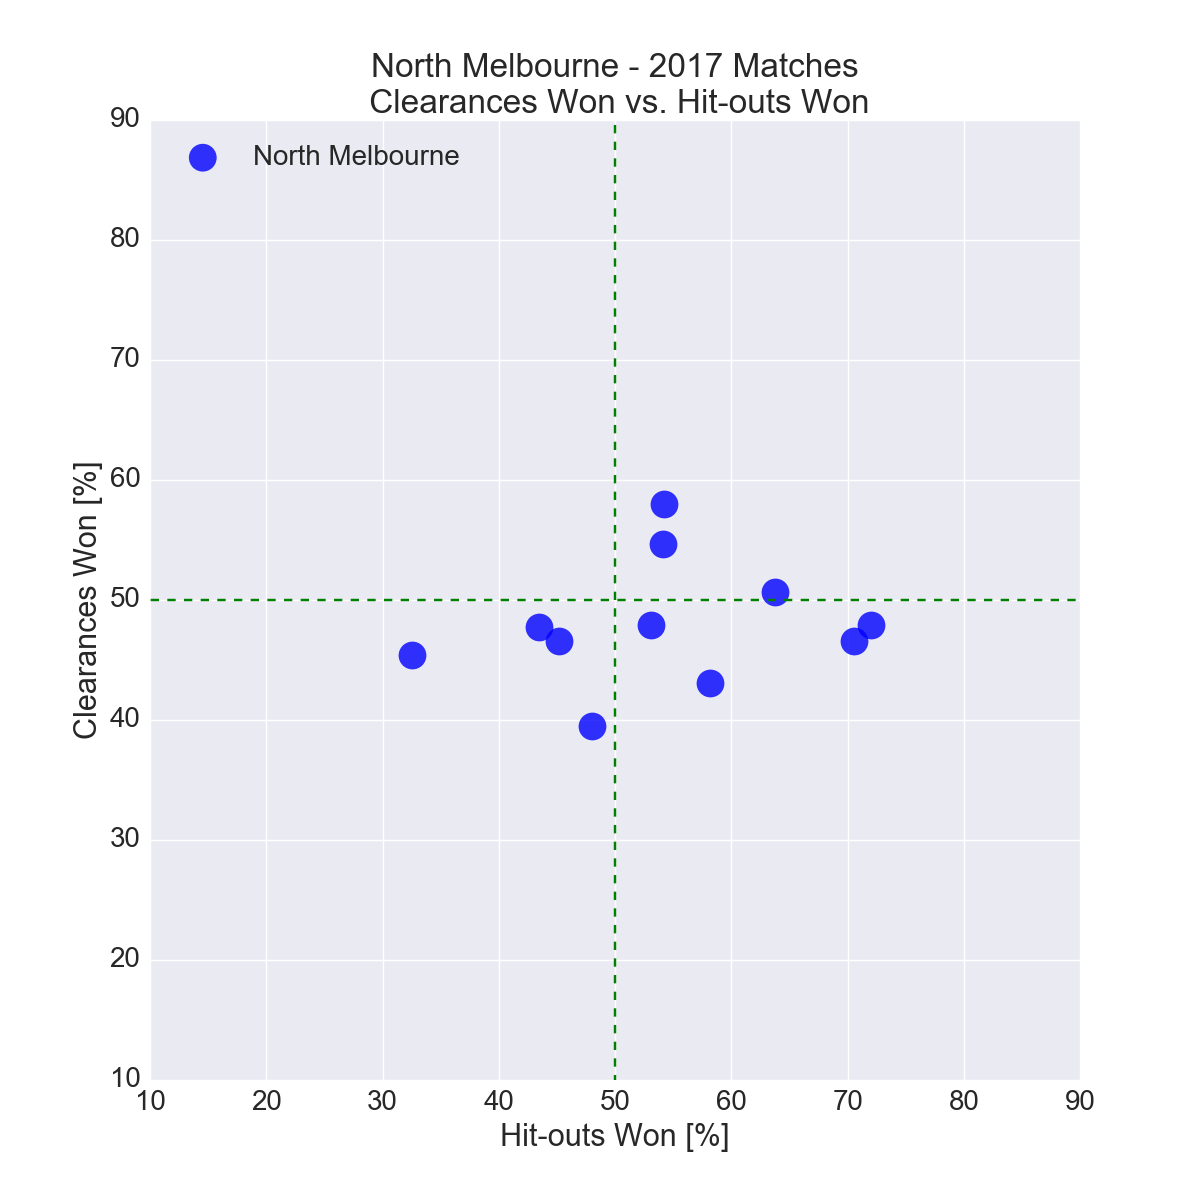 Figure-15: North Melbourne in 2017 – Clearances Won vs. Hit-outs Won